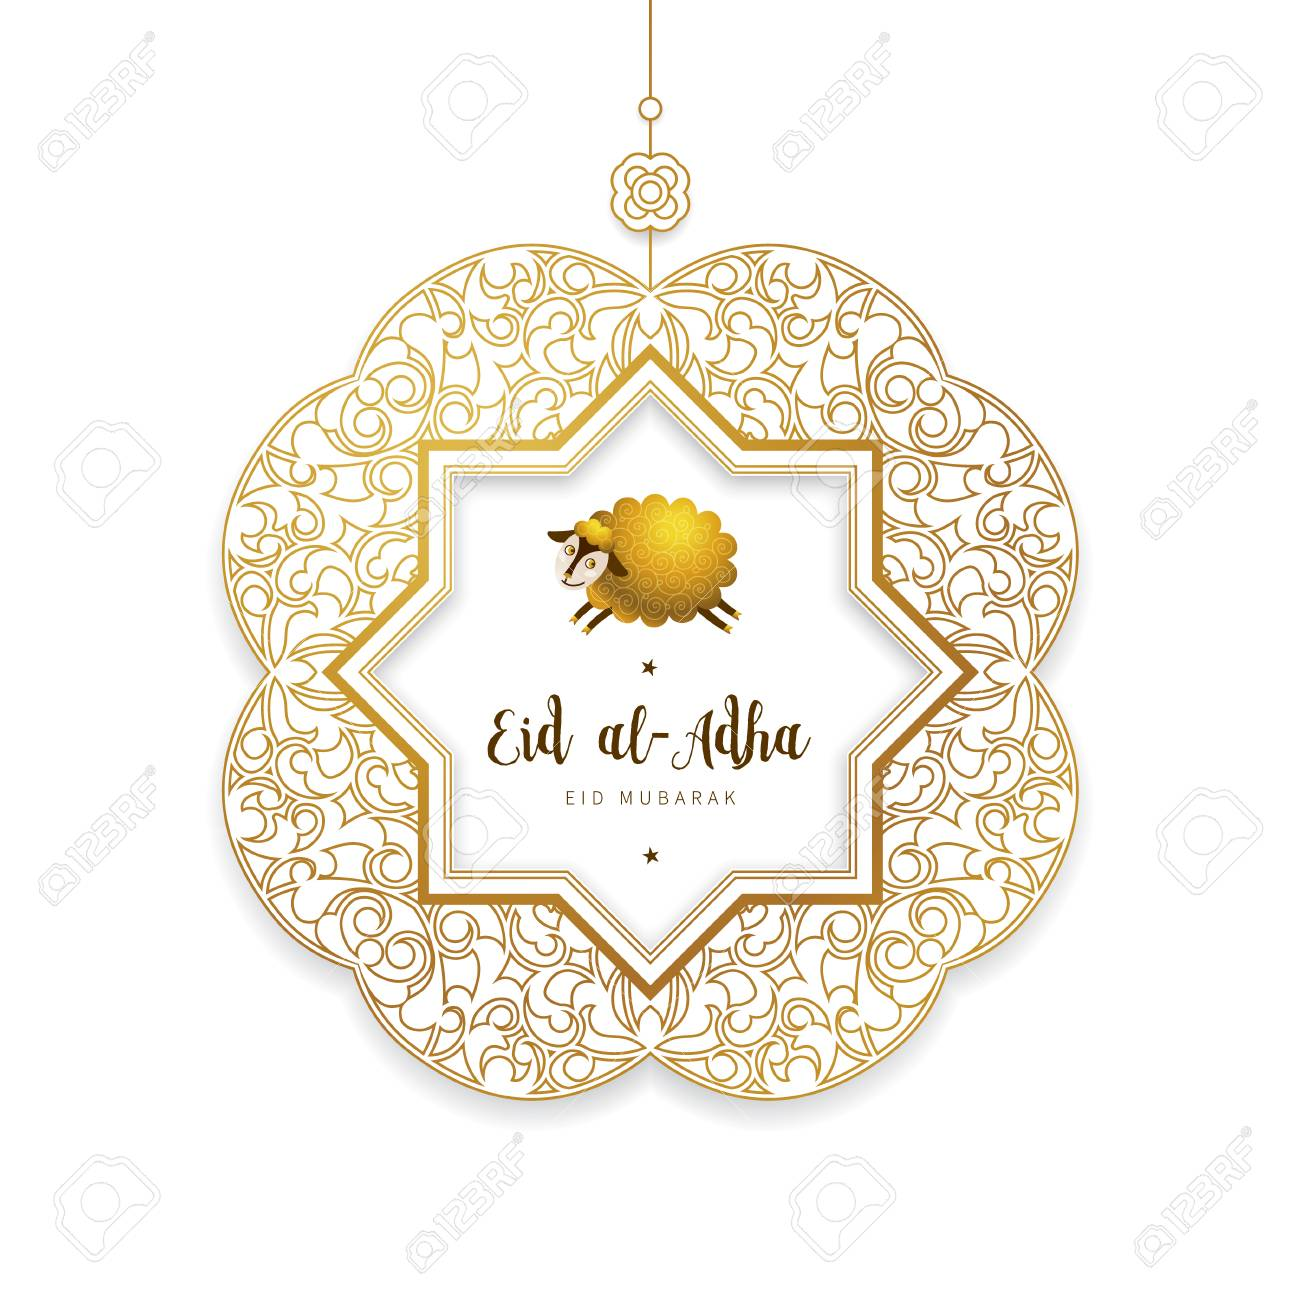 vector muslim holiday eid al adha card banner with sheep golden royalty free cliparts vectors and stock illustration image 104865535 vector muslim holiday eid al adha card banner with sheep golden royalty free cliparts vectors and stock illustration image 104865535